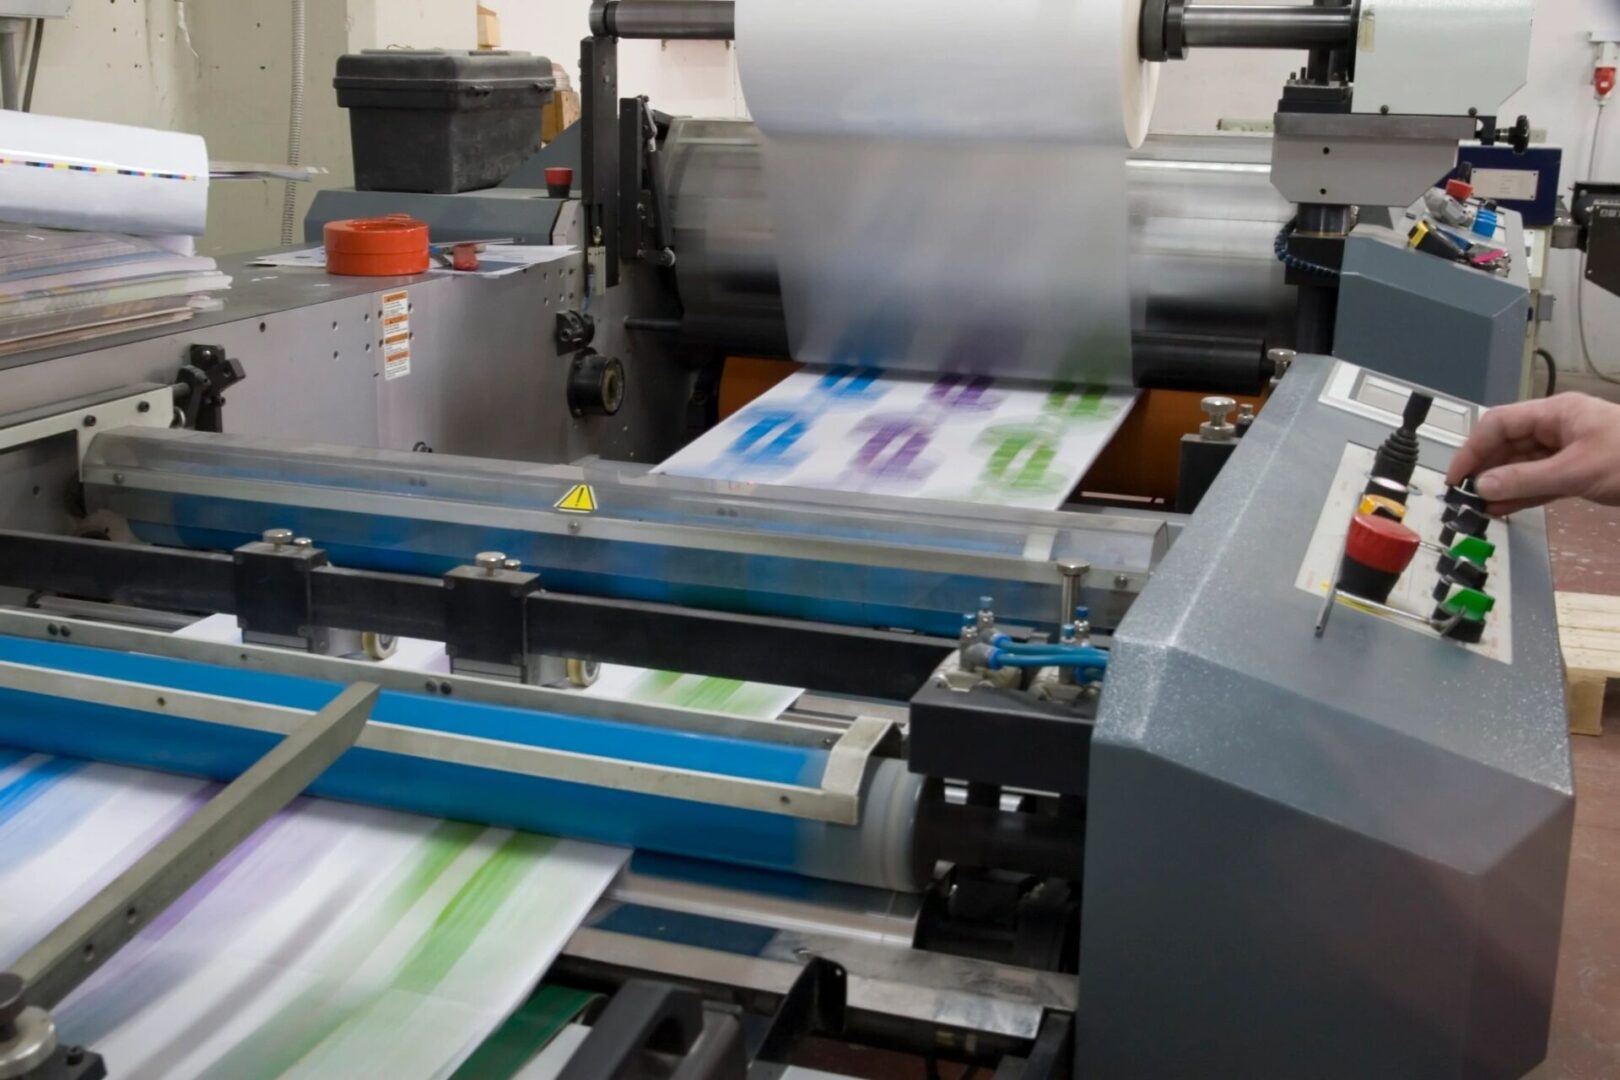 Printing Stock Images (6)